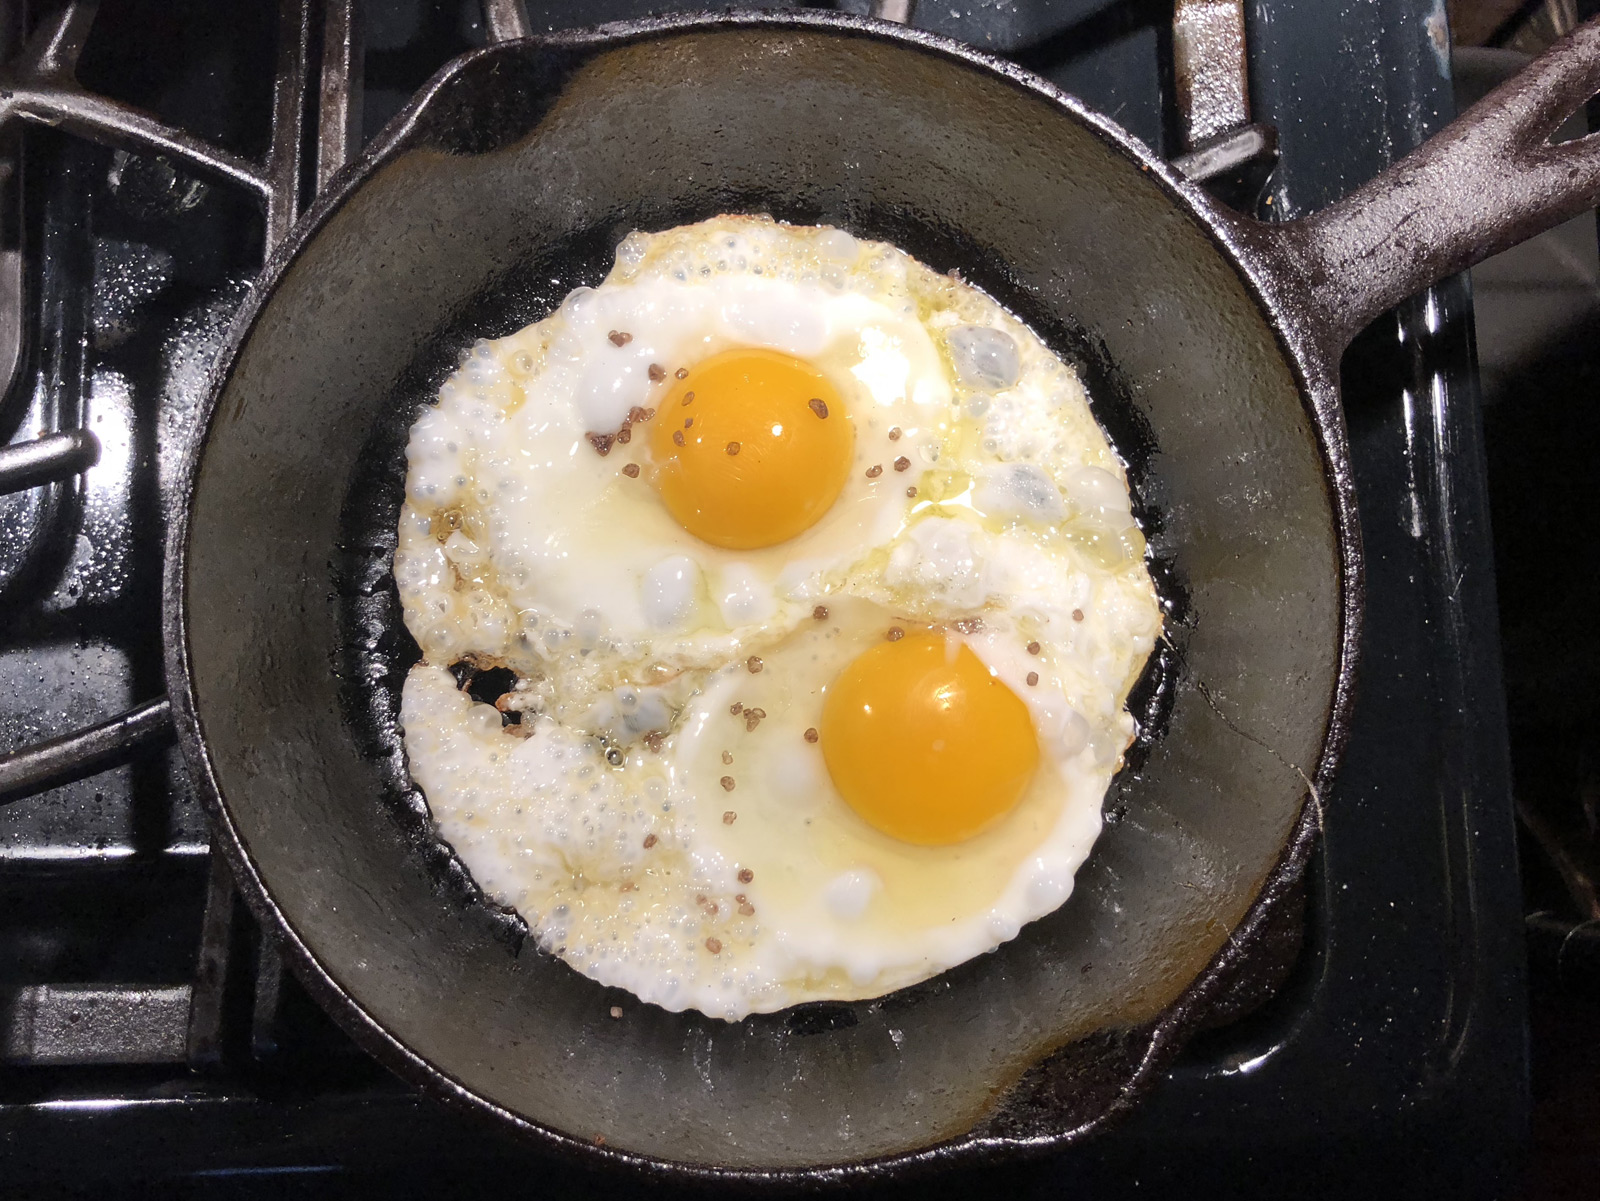 I Brought My Cast-Iron Skillet Back to Life, Now What Do I Cook?